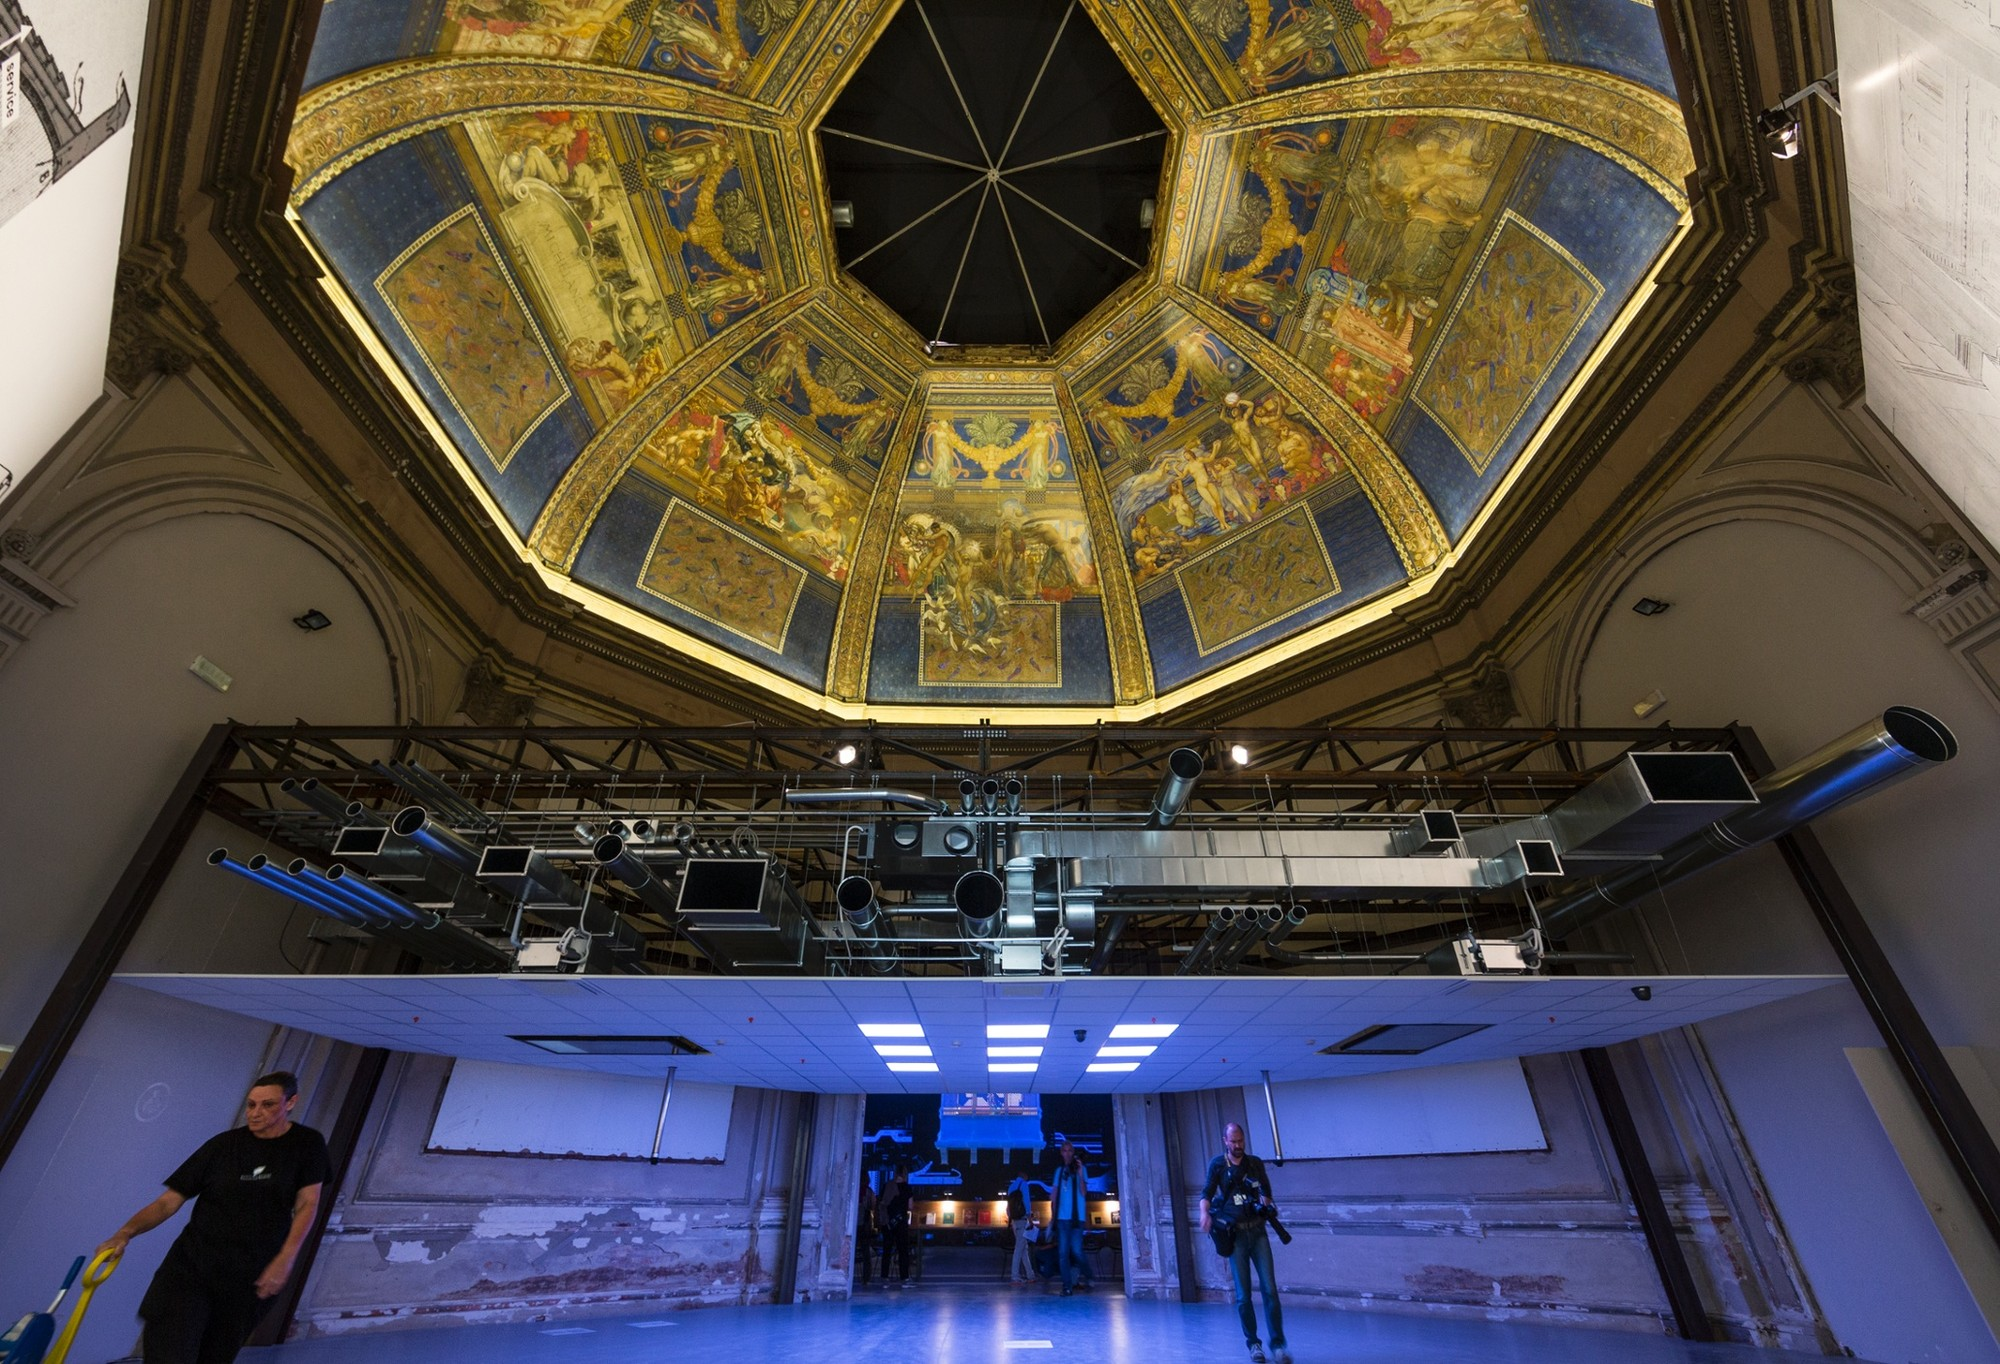 Reflections on the 2014 Venice Biennale, Fundamentals (Central Pavilion): Ceiling. Image © David Levene